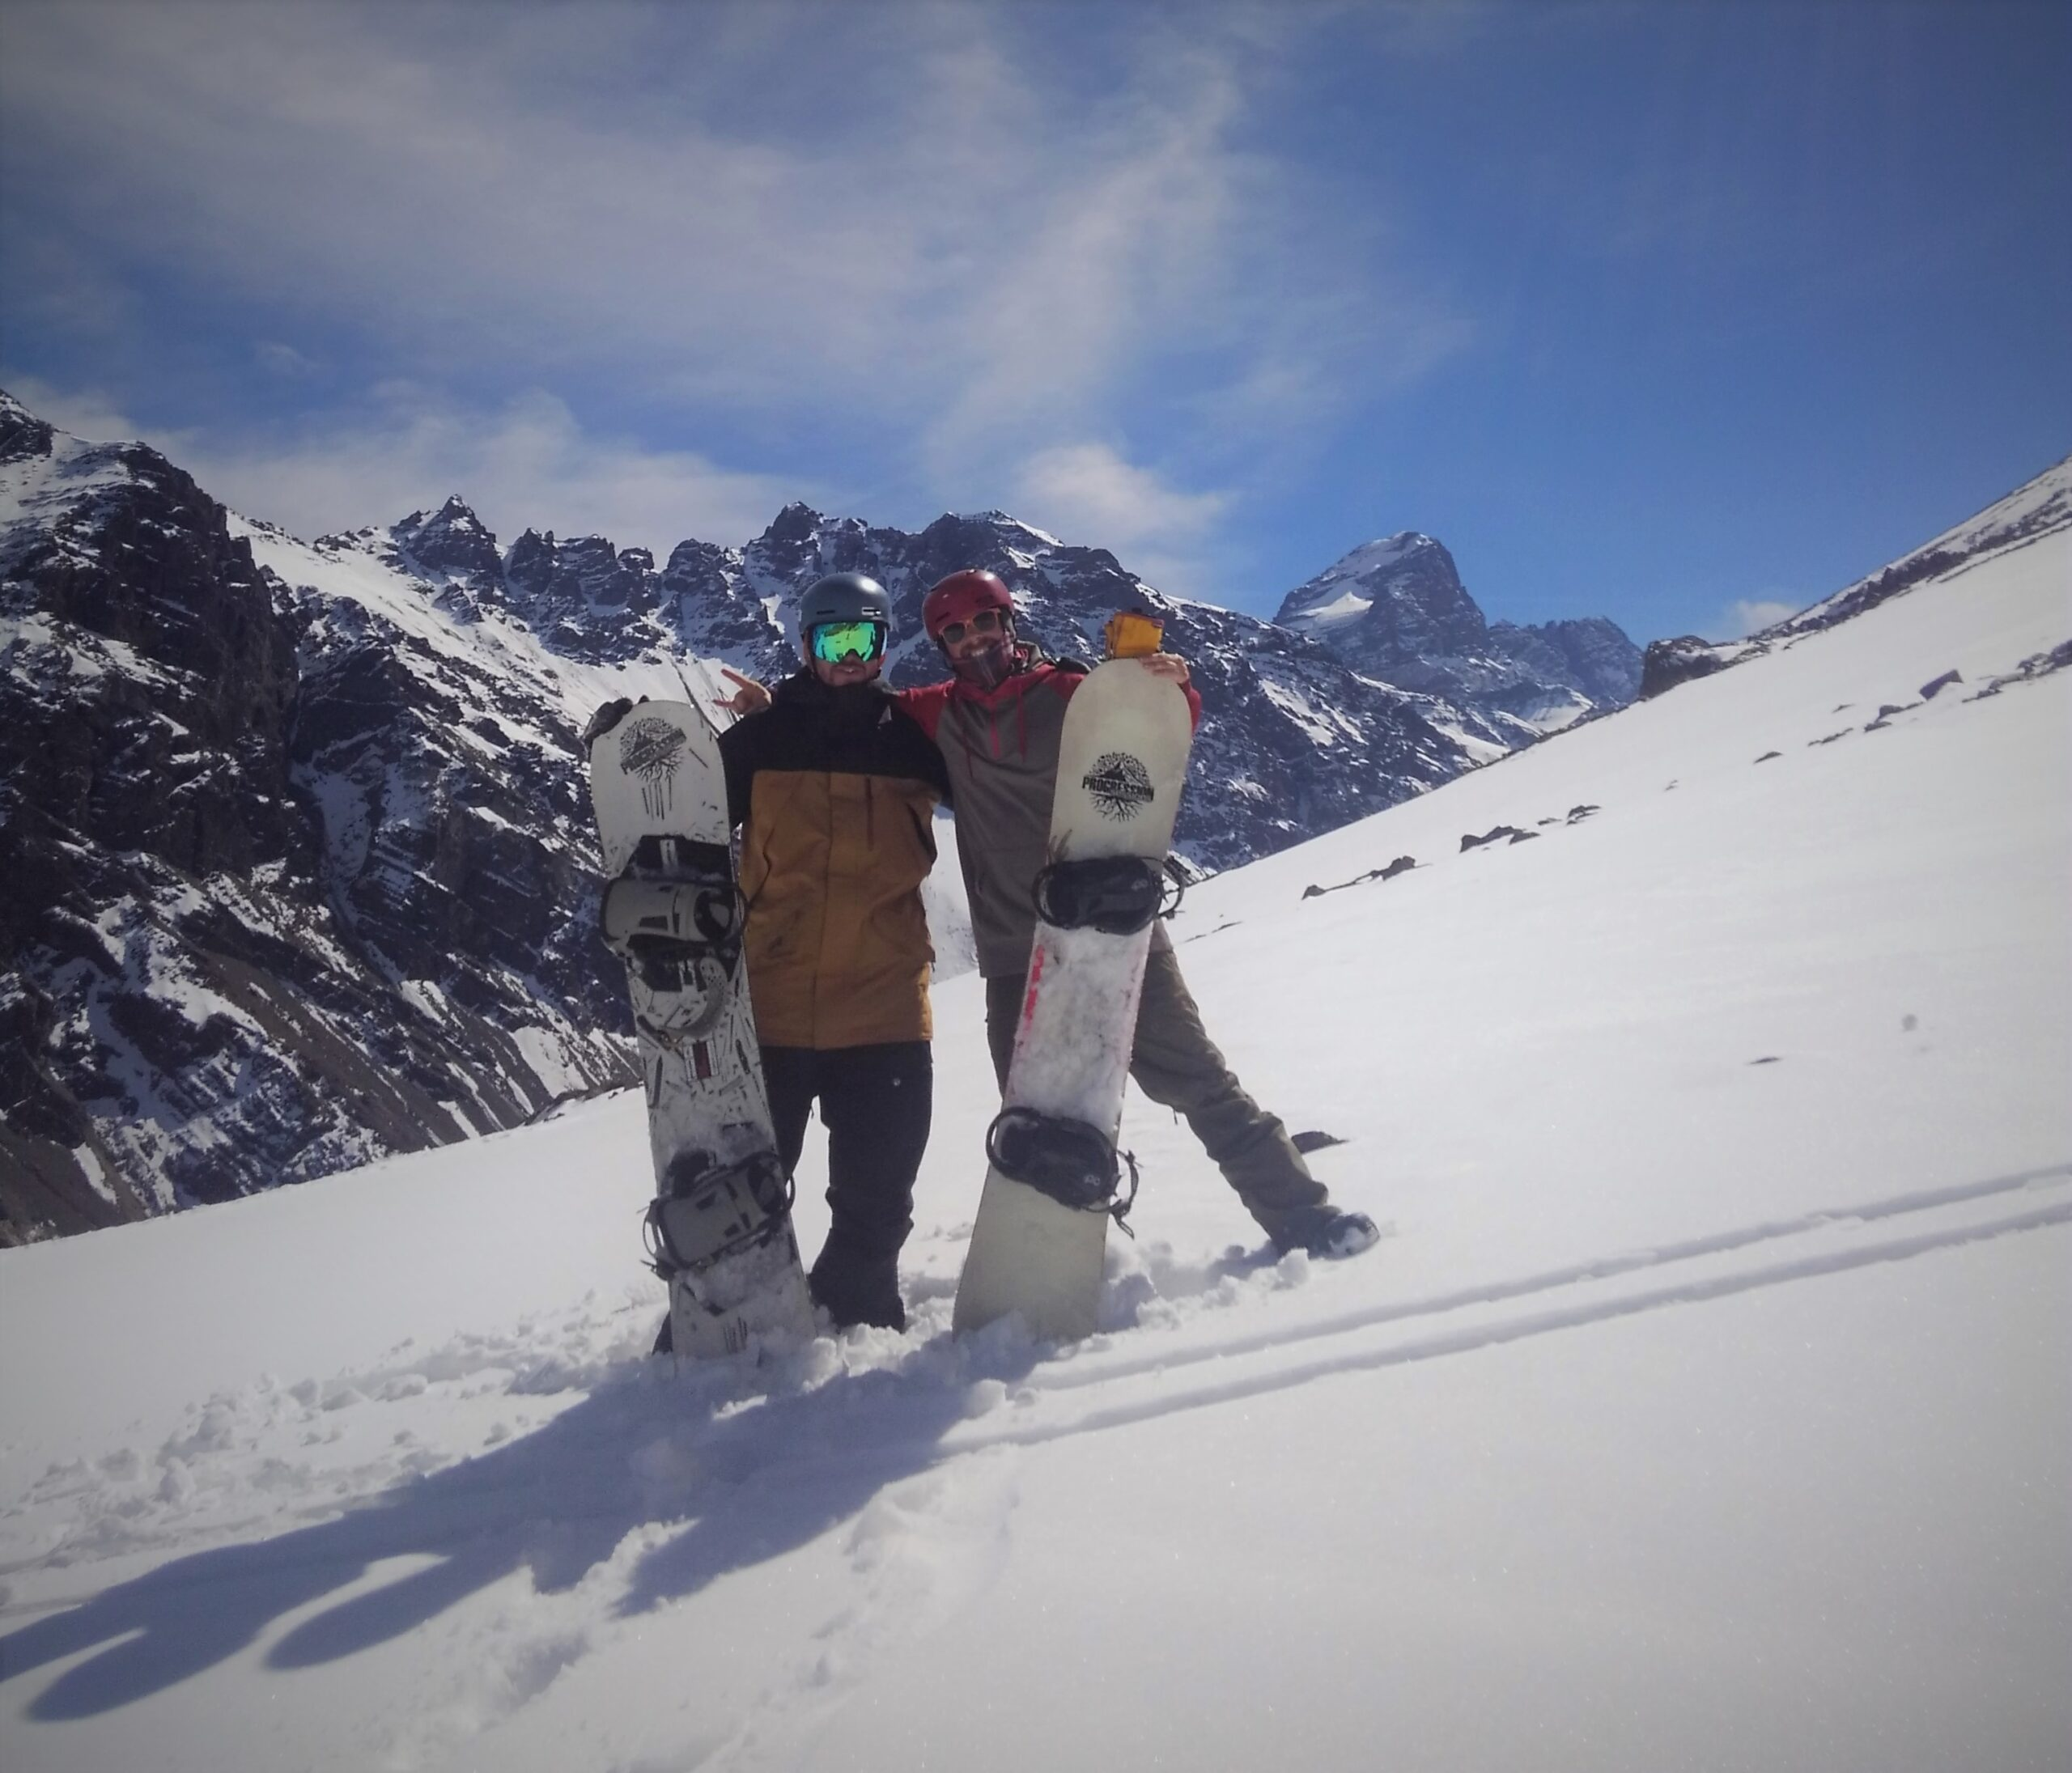 2 men holding snowboards on side of snow covered mountain with mountains in the background